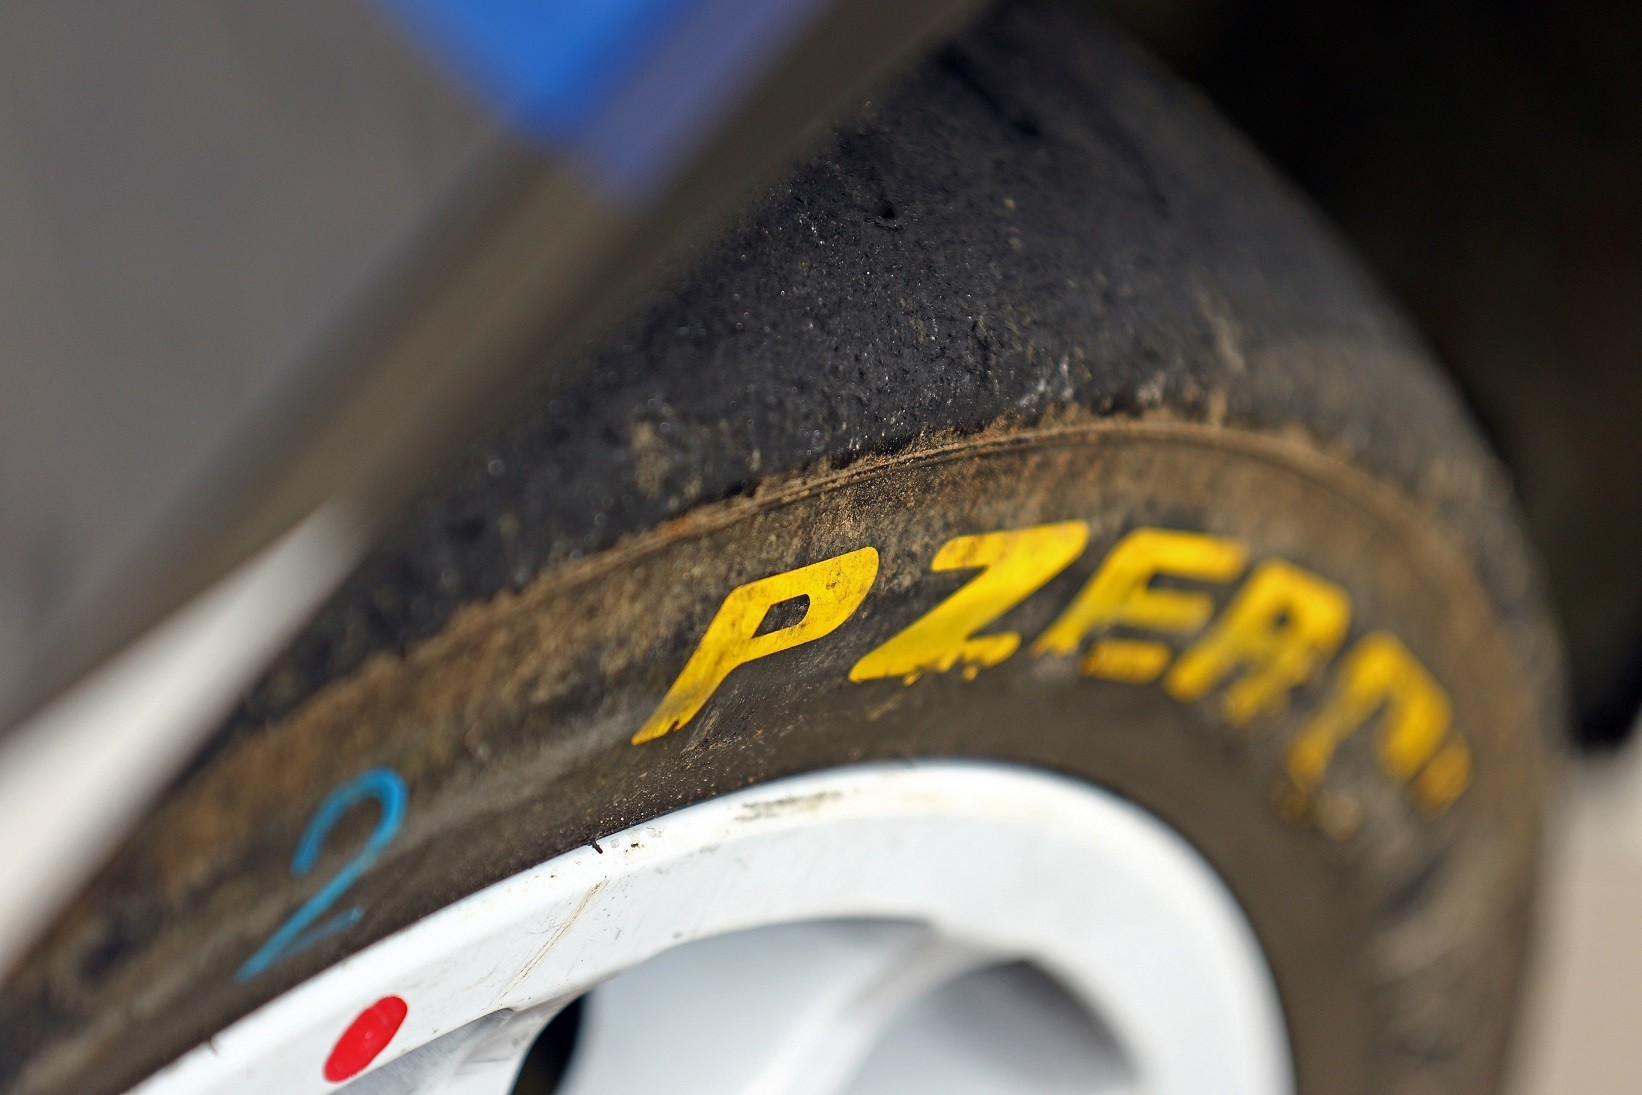 Pirelli will supply several rally champions throughout the world